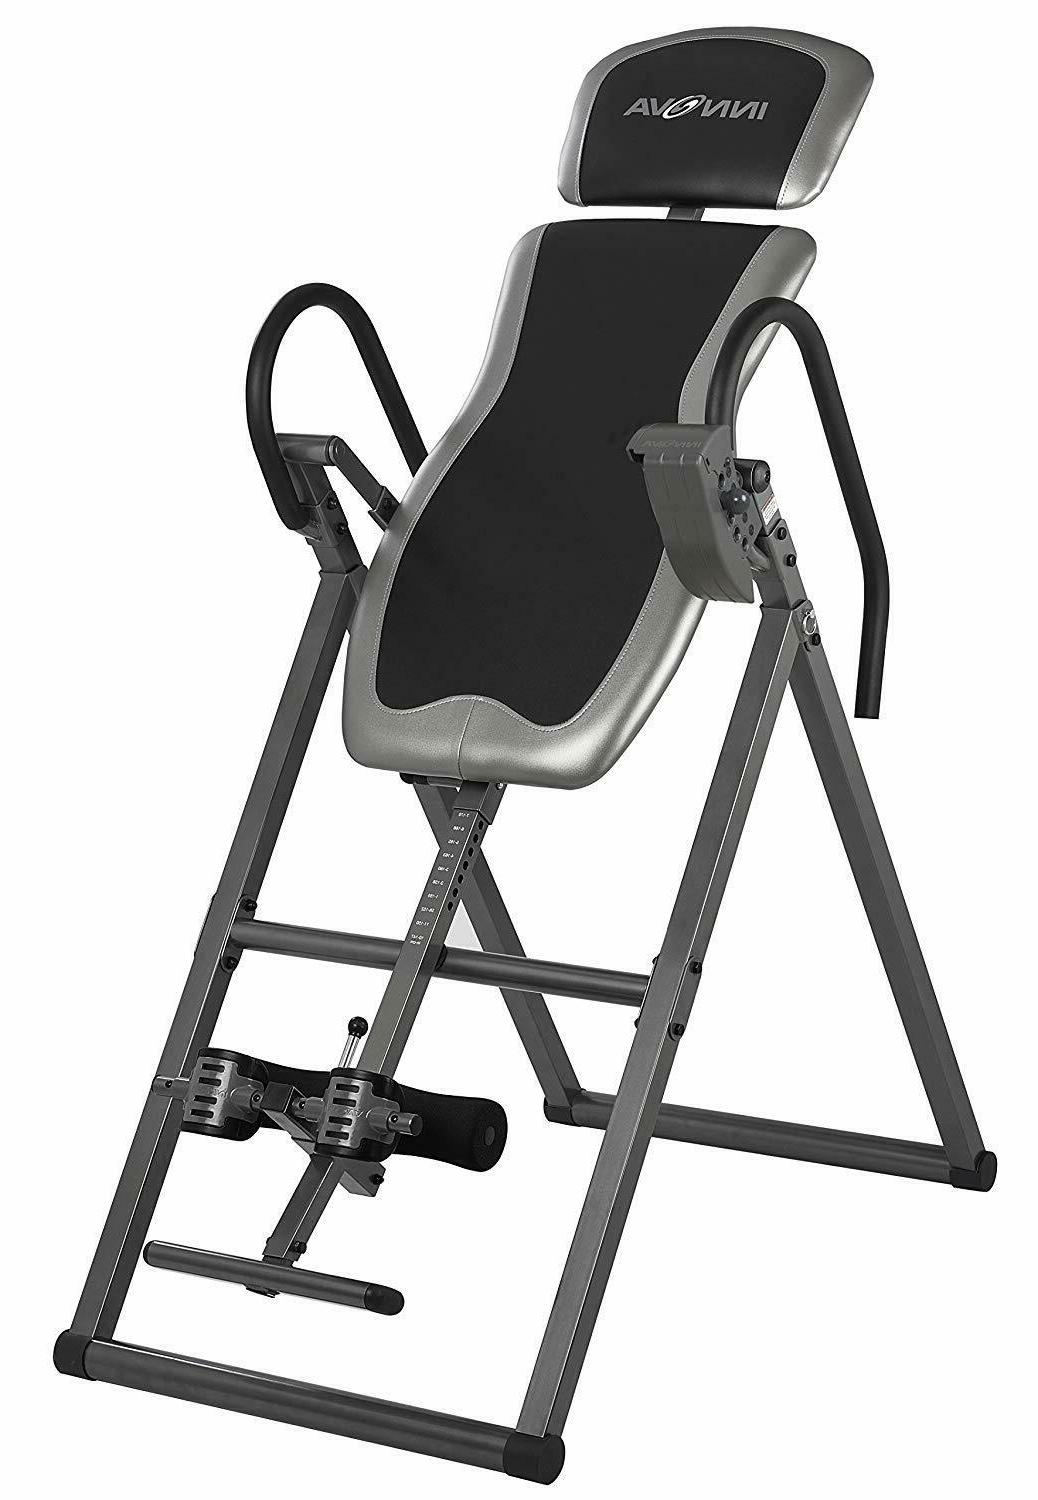 innova fitness deluxe inversion table heavy duty